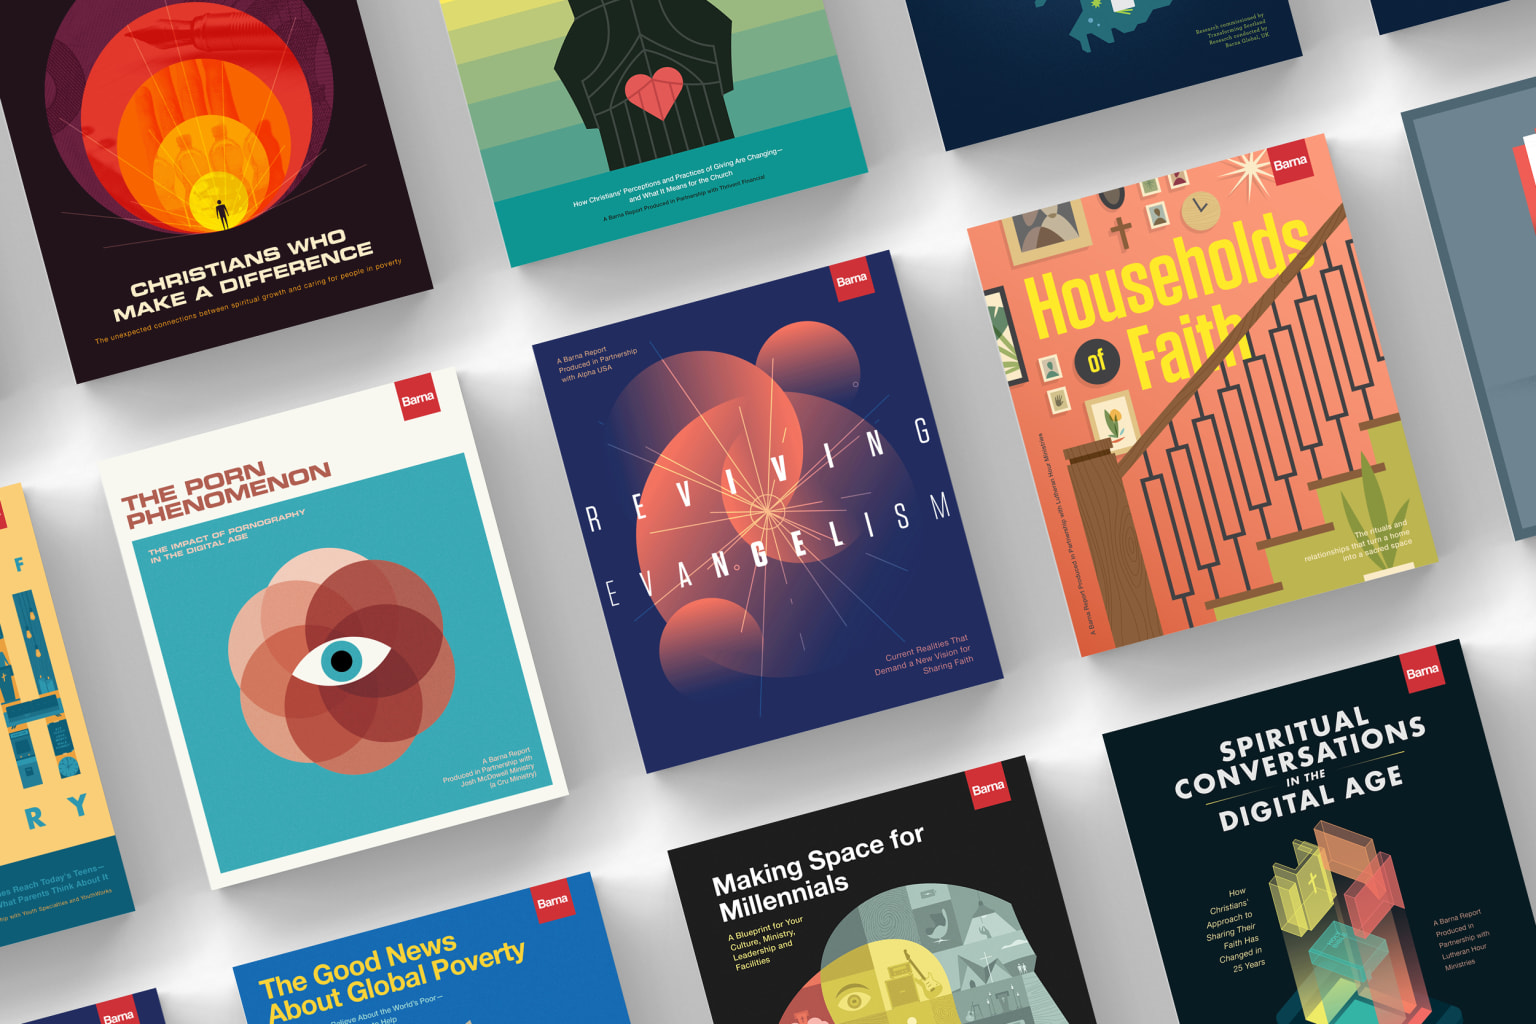 The Barna Group Research Monographs